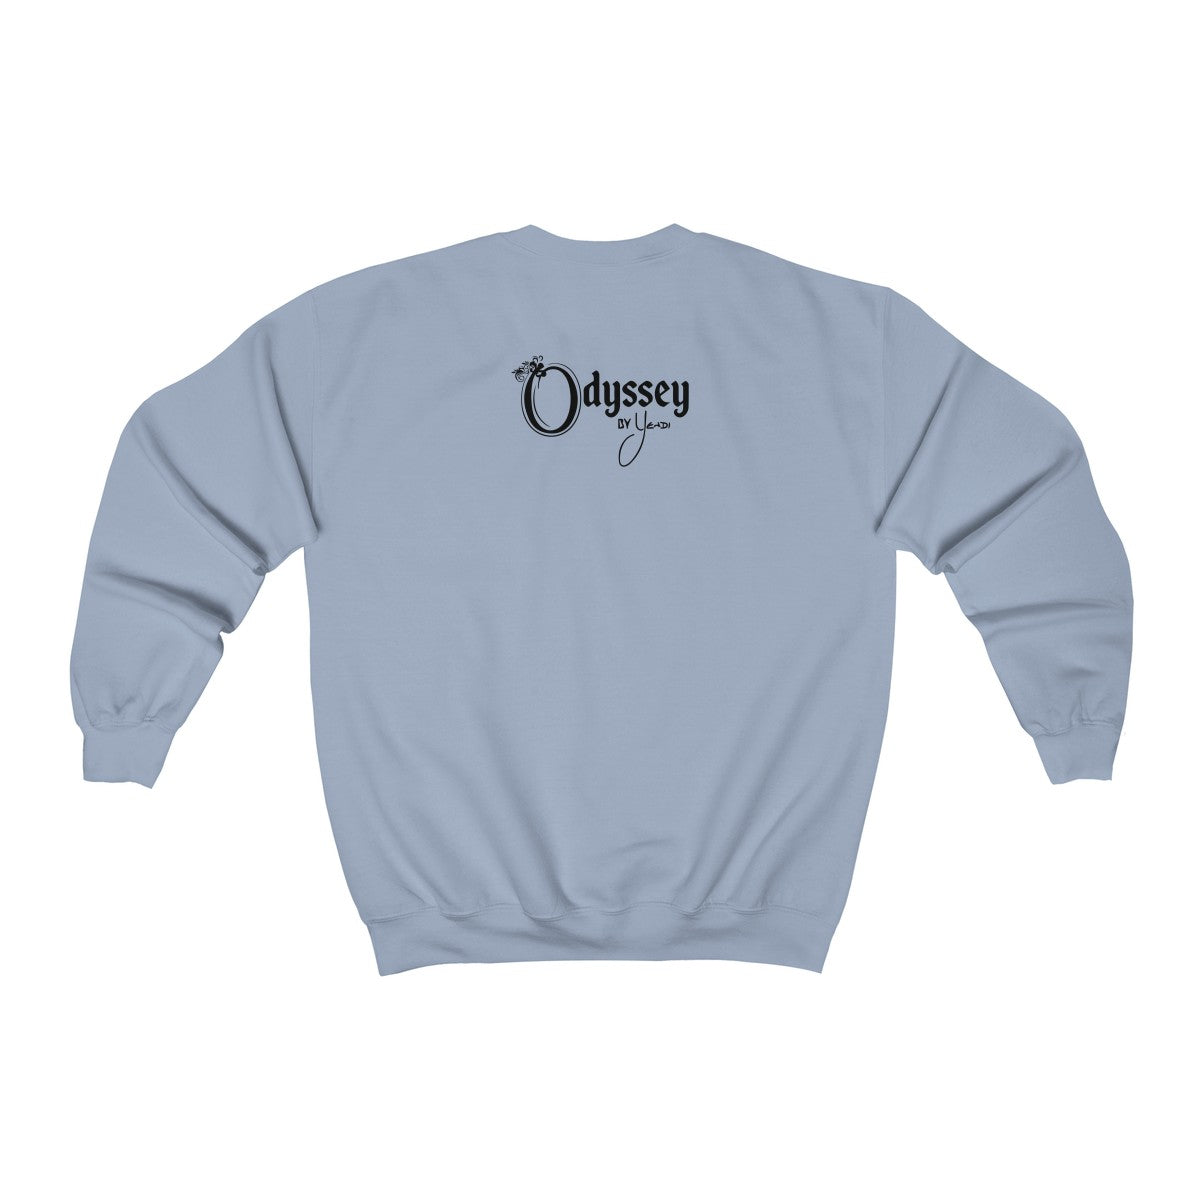 Odyssey Power Love Sound Mind Women's Crewneck Sweatshirt - Light